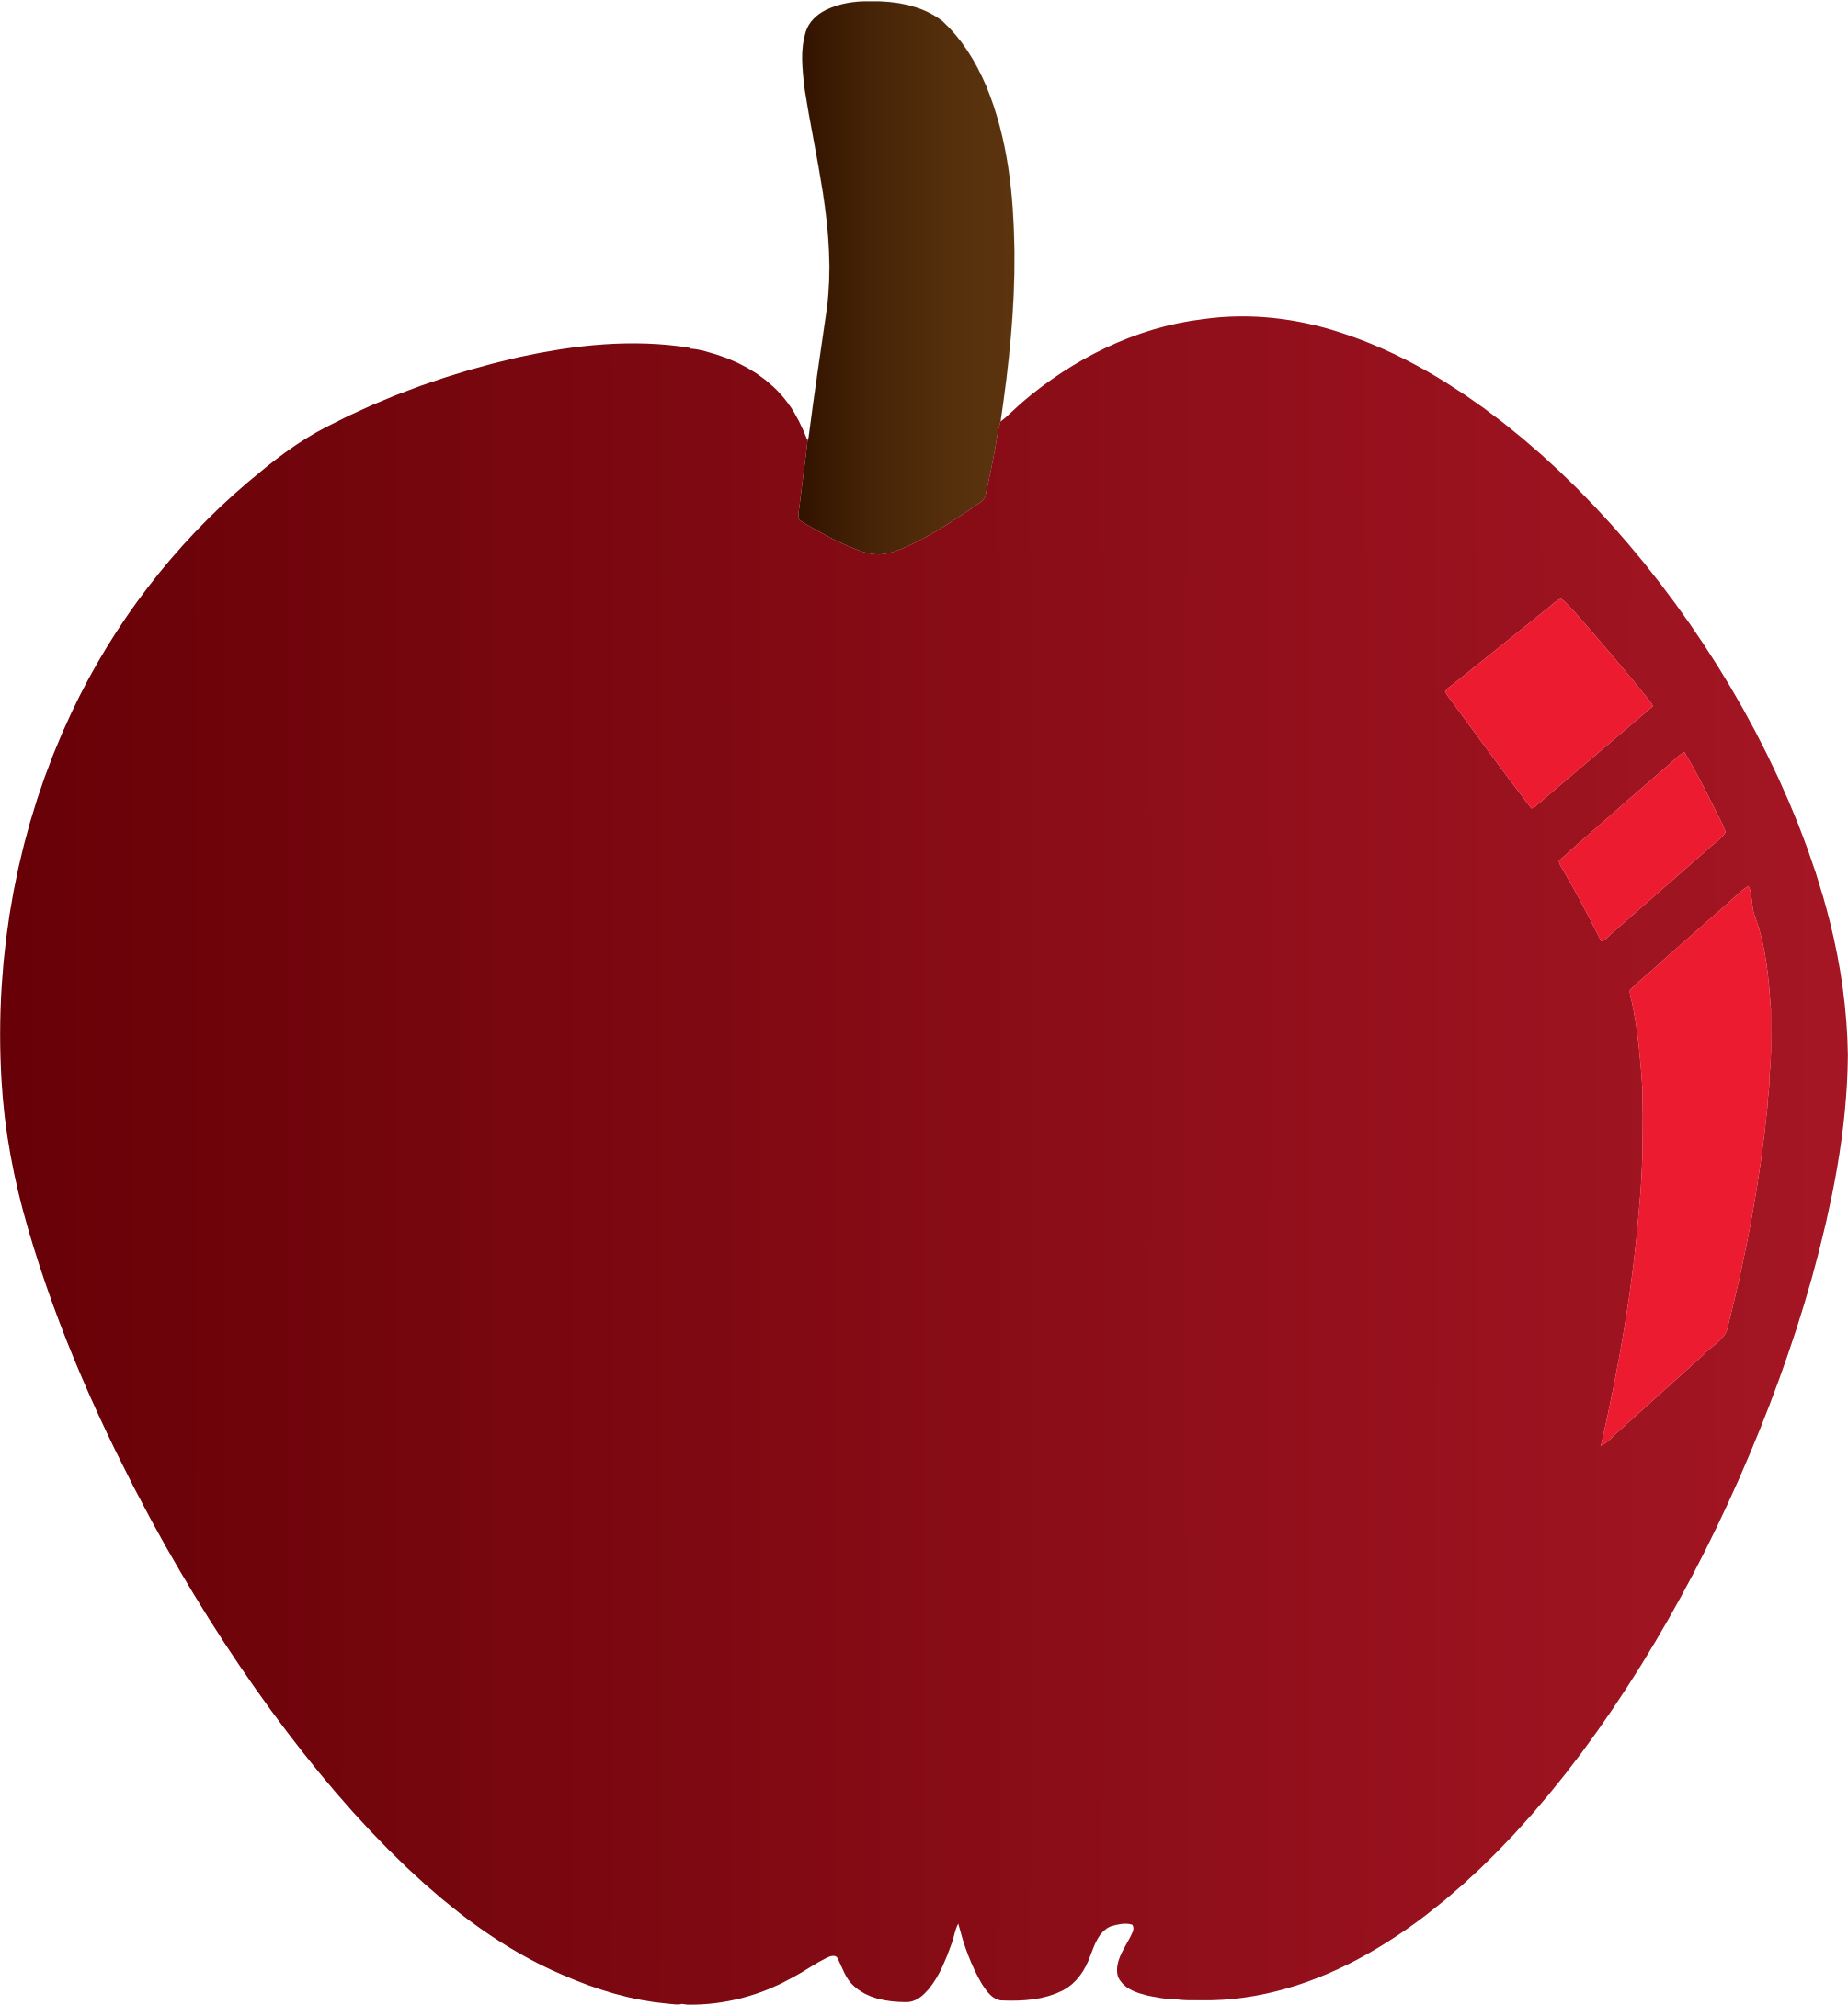 clip art download Red apples clipart. Apple big image png